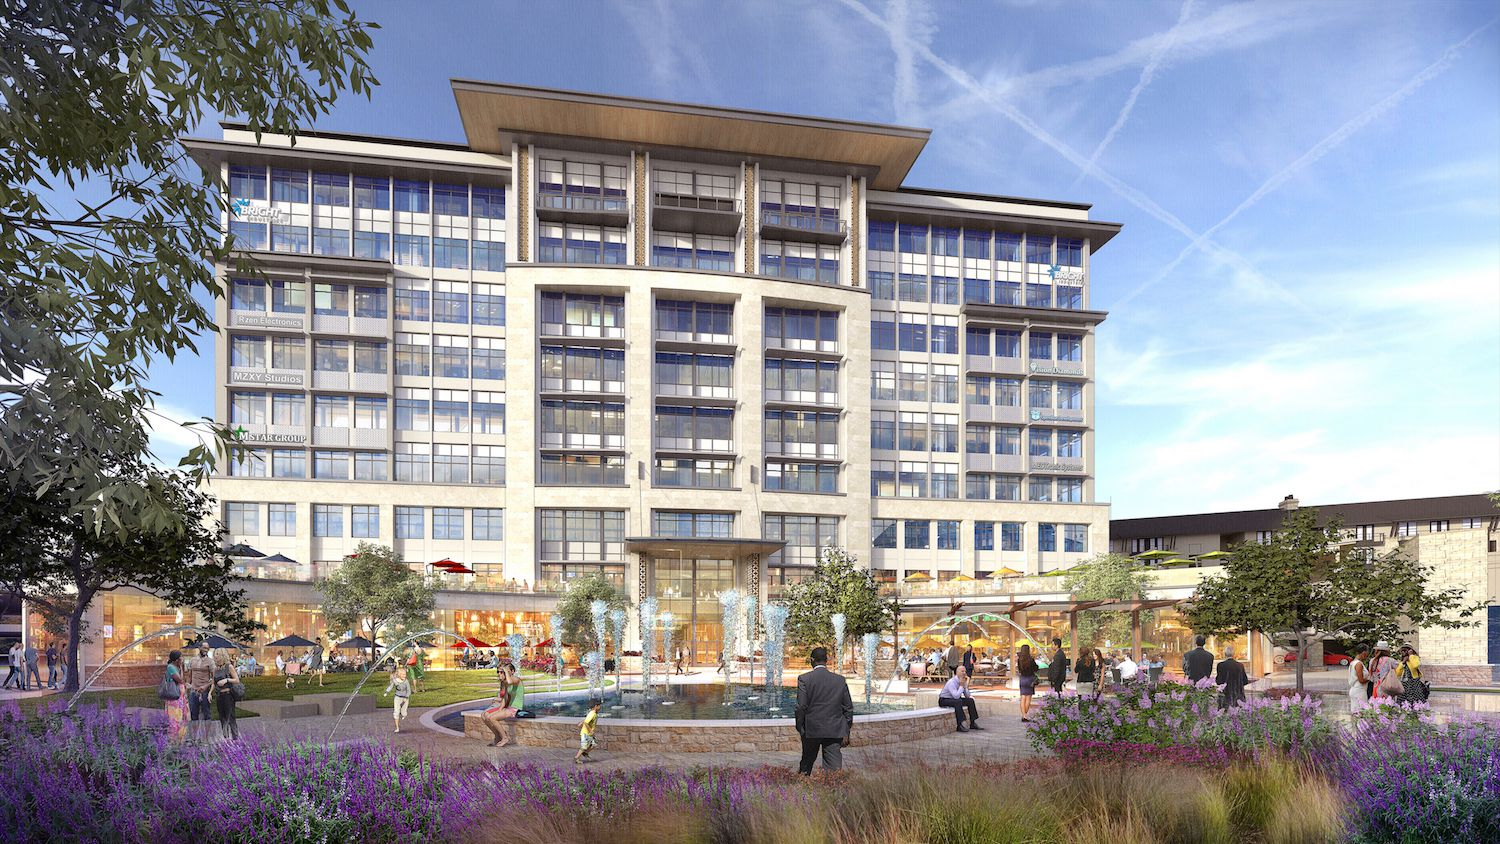 The first phase of the development will include a nine-story office and retail building.